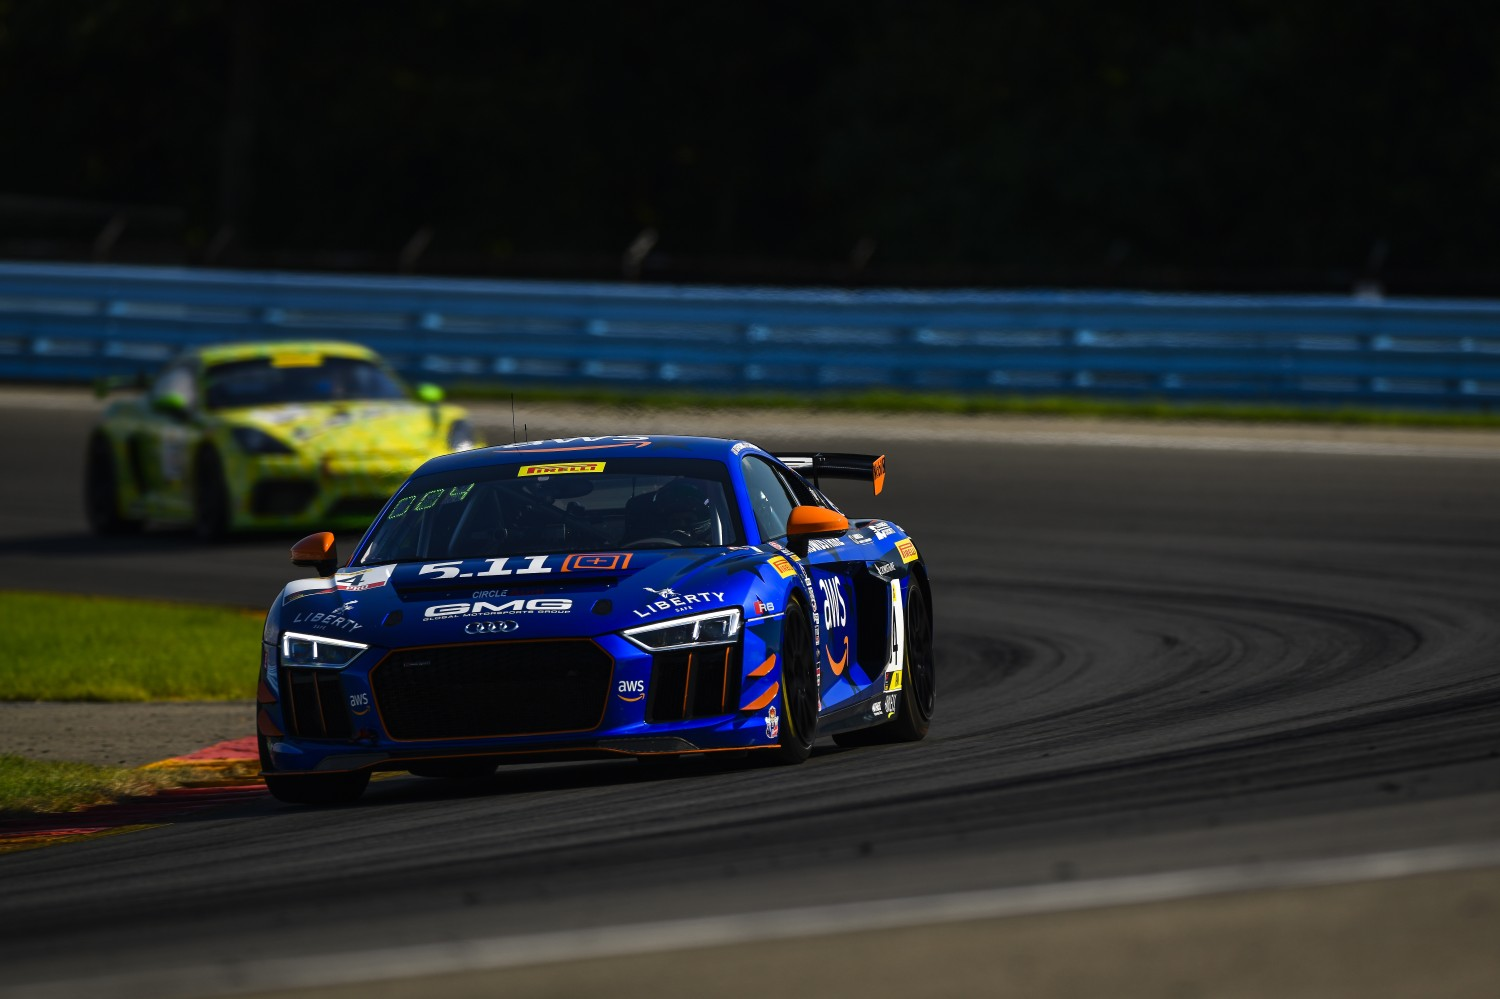 #04 Audi R8 LMS GT4 of CJ Moses and James Sofronas, AndrettiGMG Racing, Watkins Glen World Challenge America, Watkins Glen NY  | SRO Motorsports Group